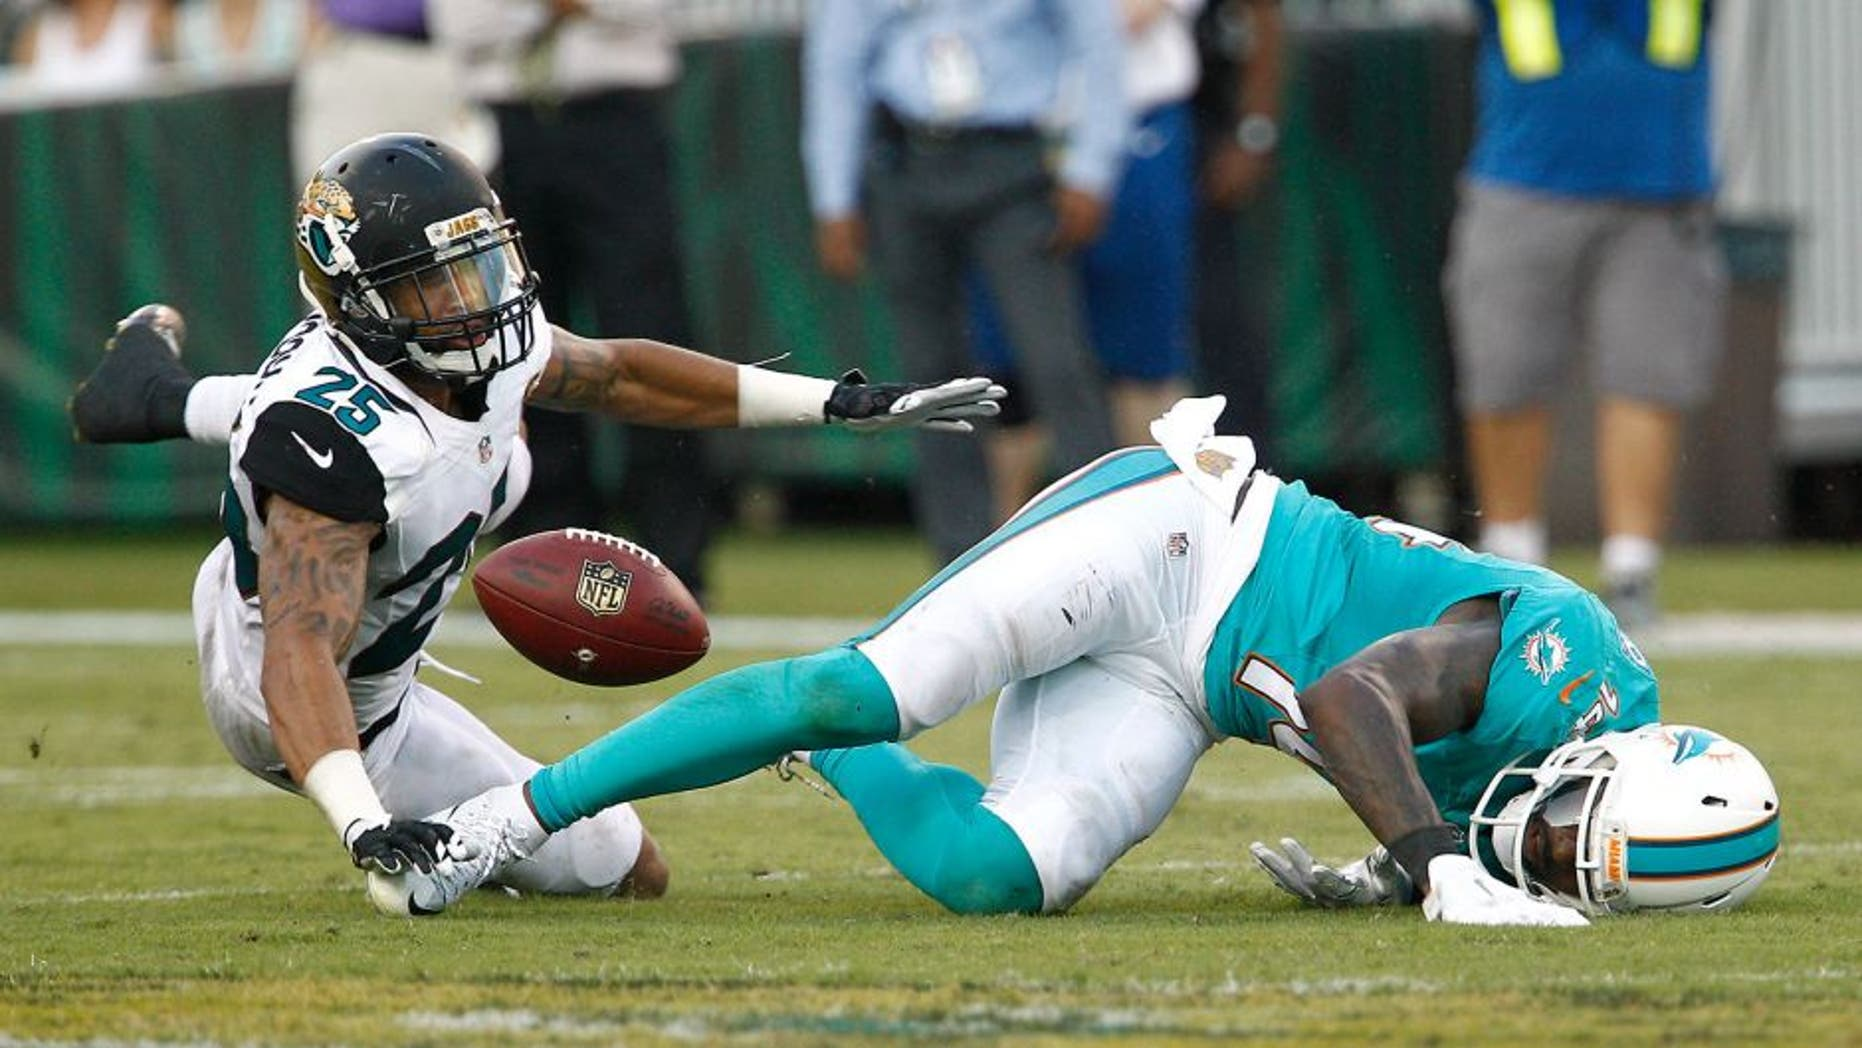 Sep 20, 2015; Jacksonville, FL, USA; Miami Dolphins wide receiver Jarvis Landry (14) can't hold onto the pass under pressure from Jacksonville Jaguars corner back Peyton Thompson (25) during the second half of an NFL Football game at EverBank Field. The Jacksonville Jaguars won 23-20. Mandatory Credit: Reinhold Matay-USA TODAY Sports